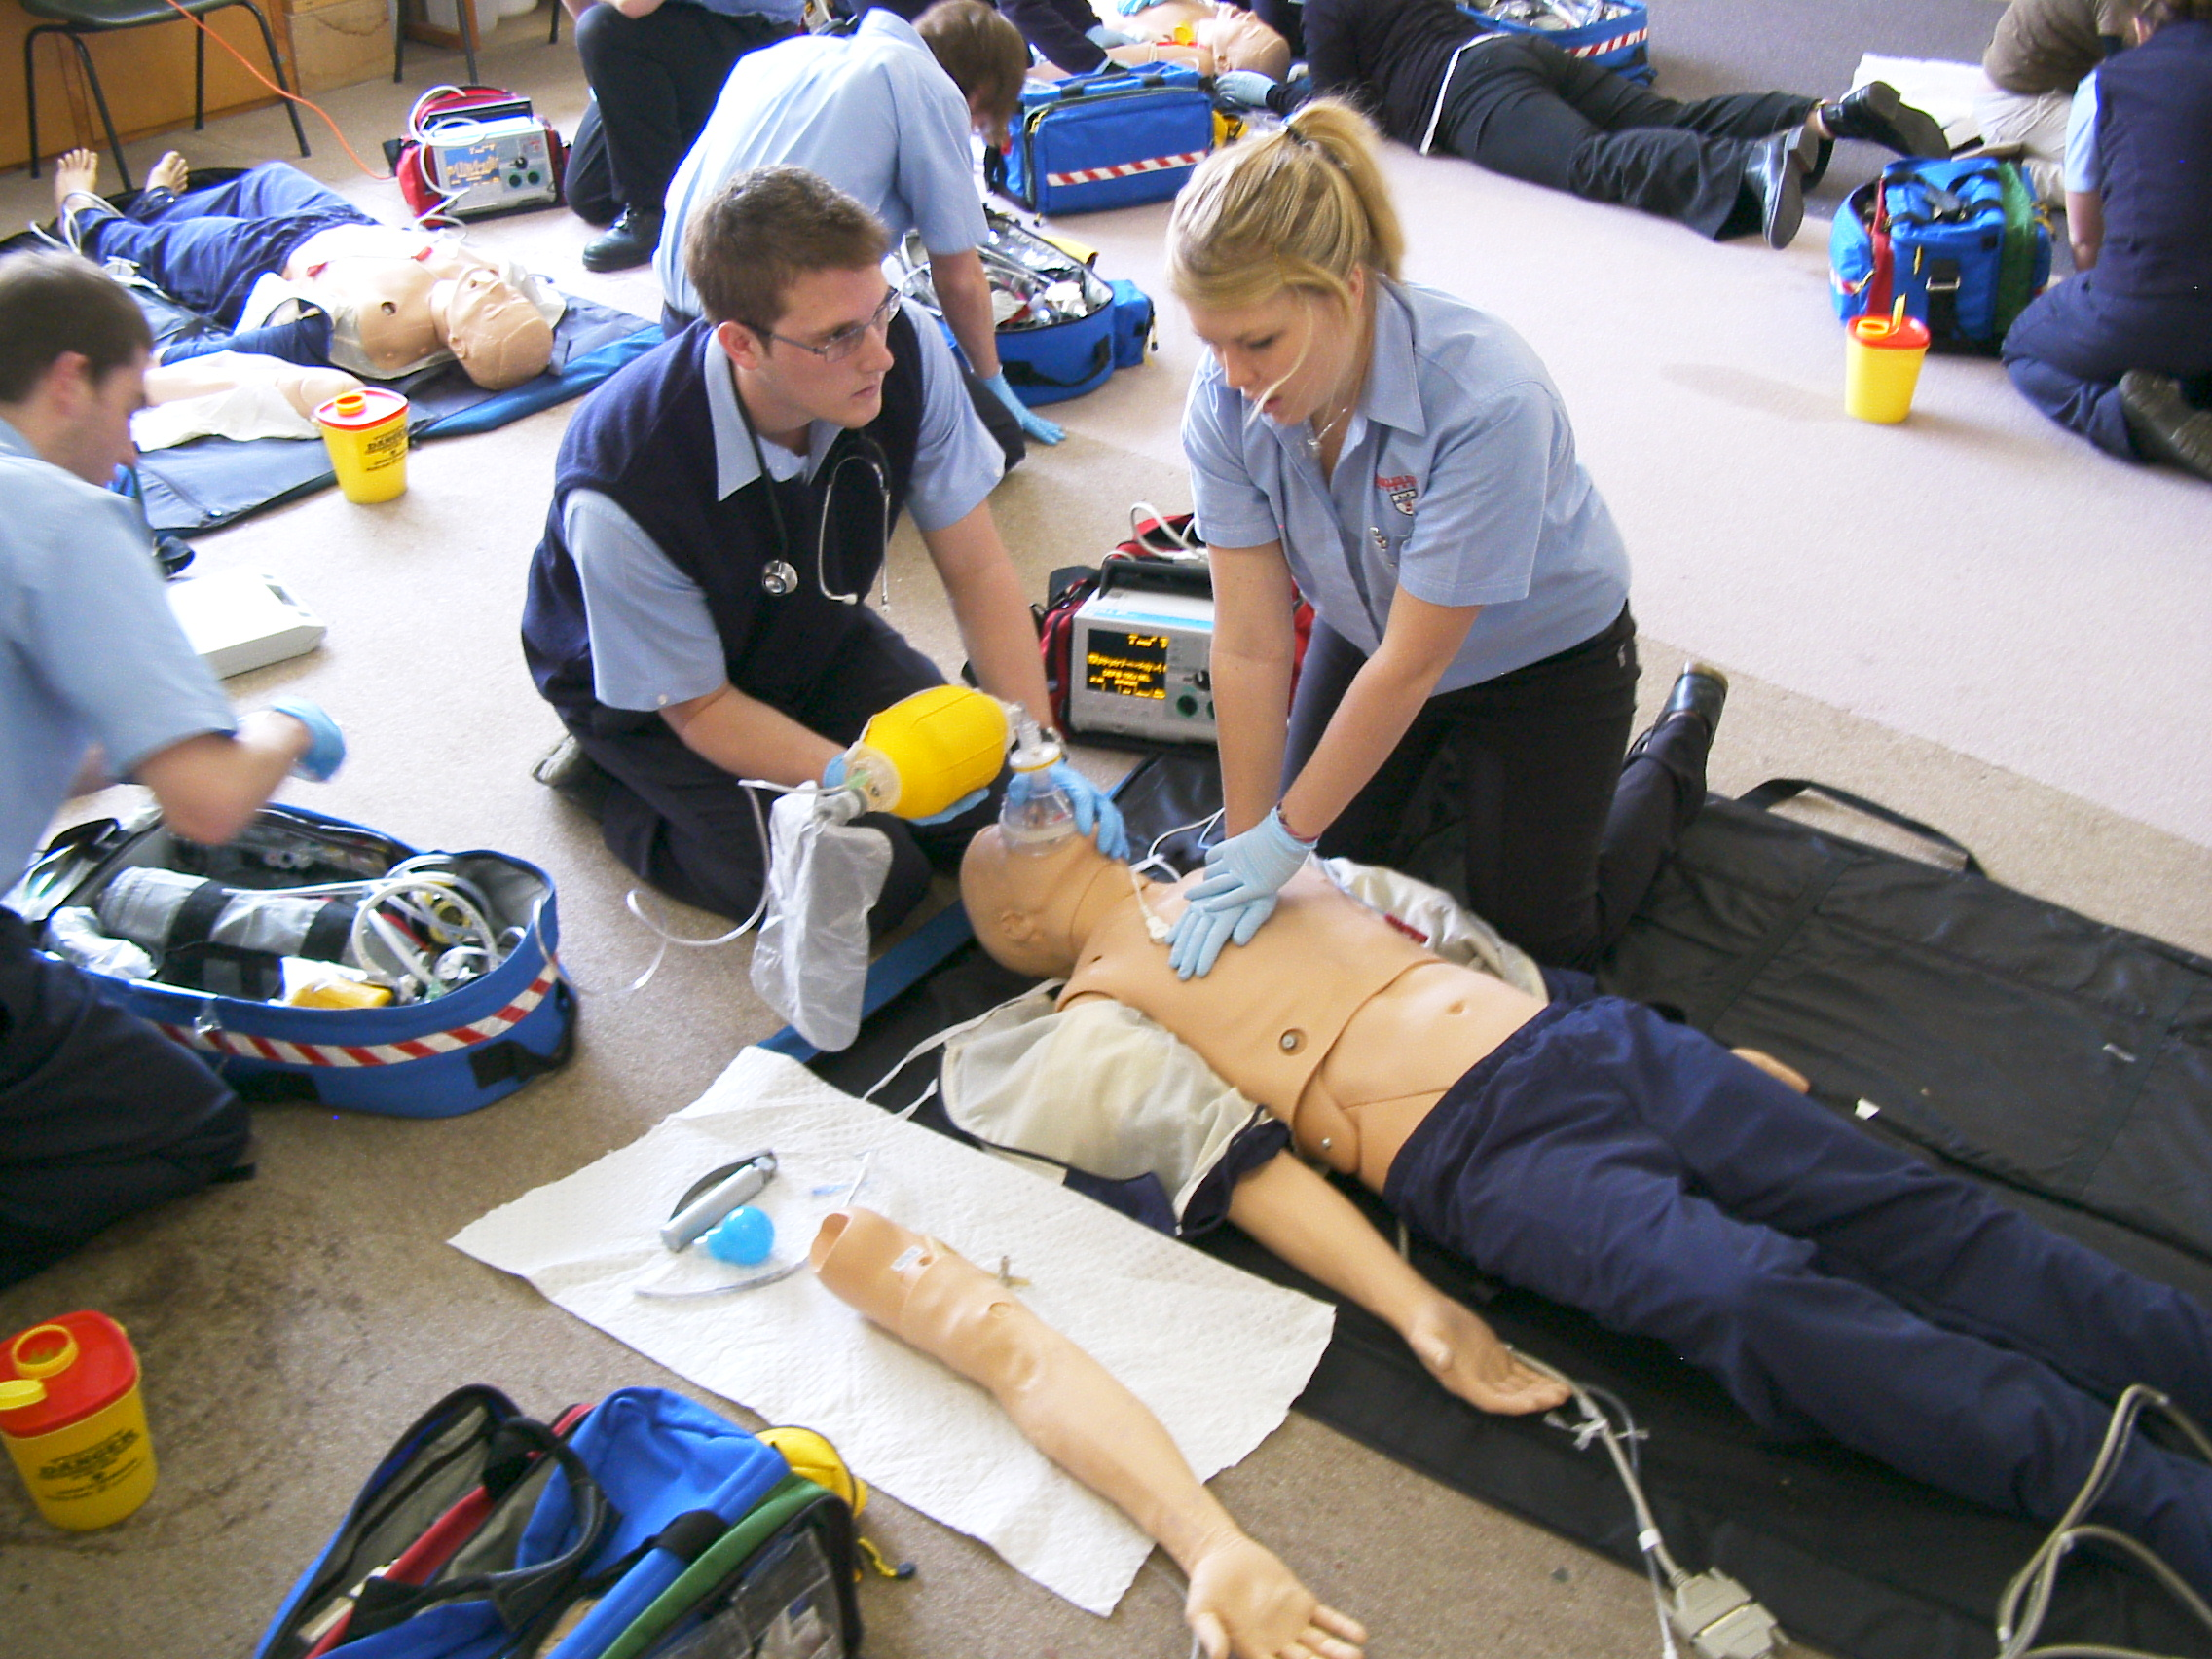 Hci courses to take throughout emt career courses to take throughout emt career xflitez Gallery